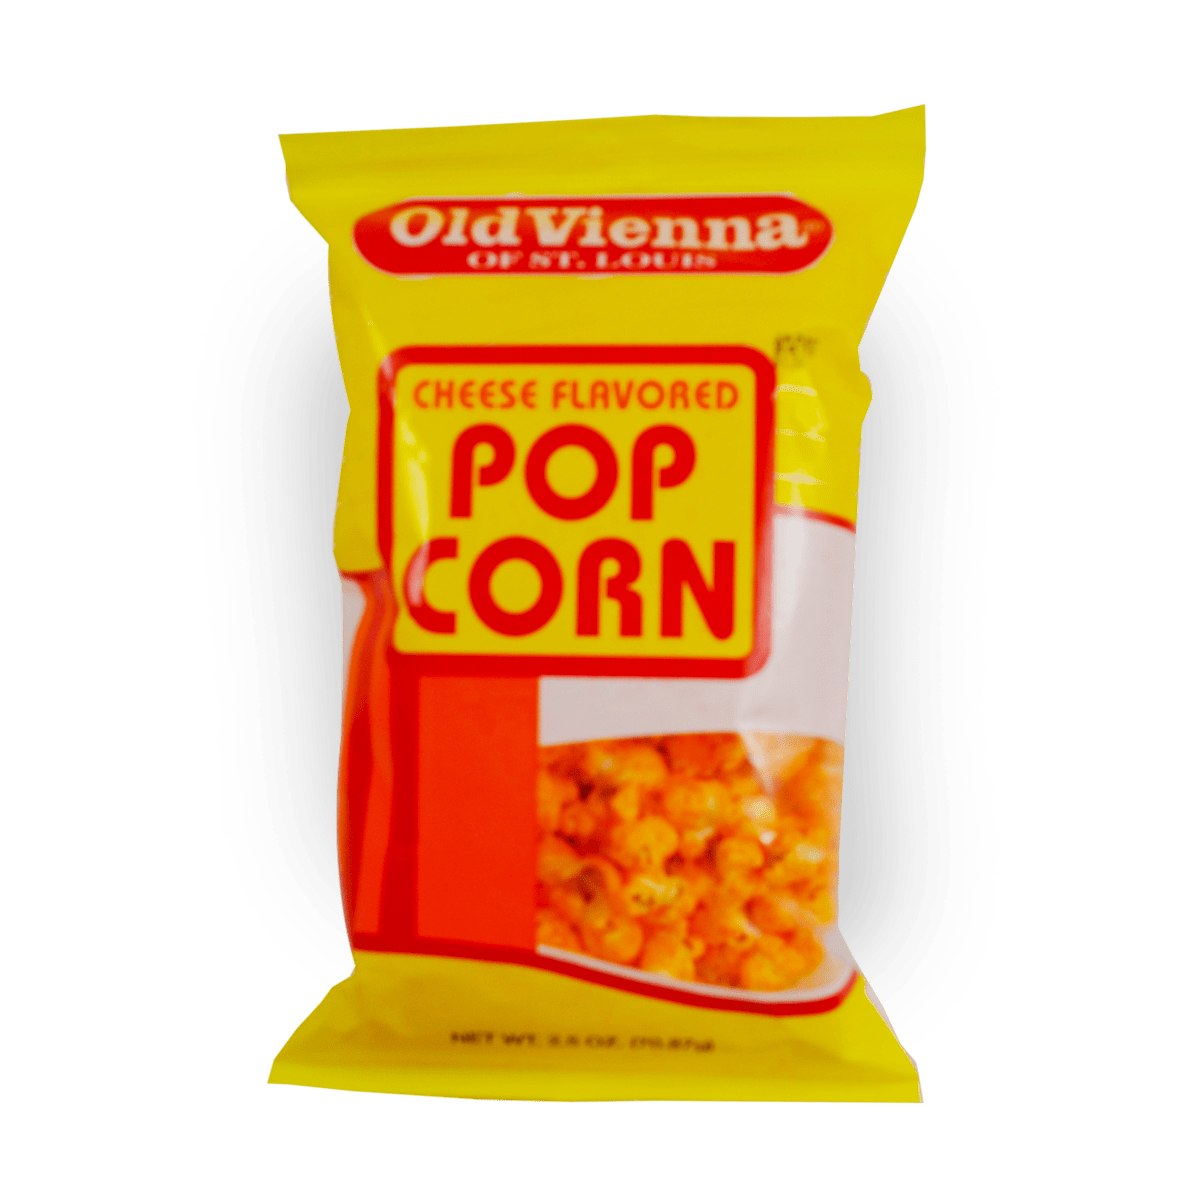 Old Vienna Cheese Flavored Popcorn